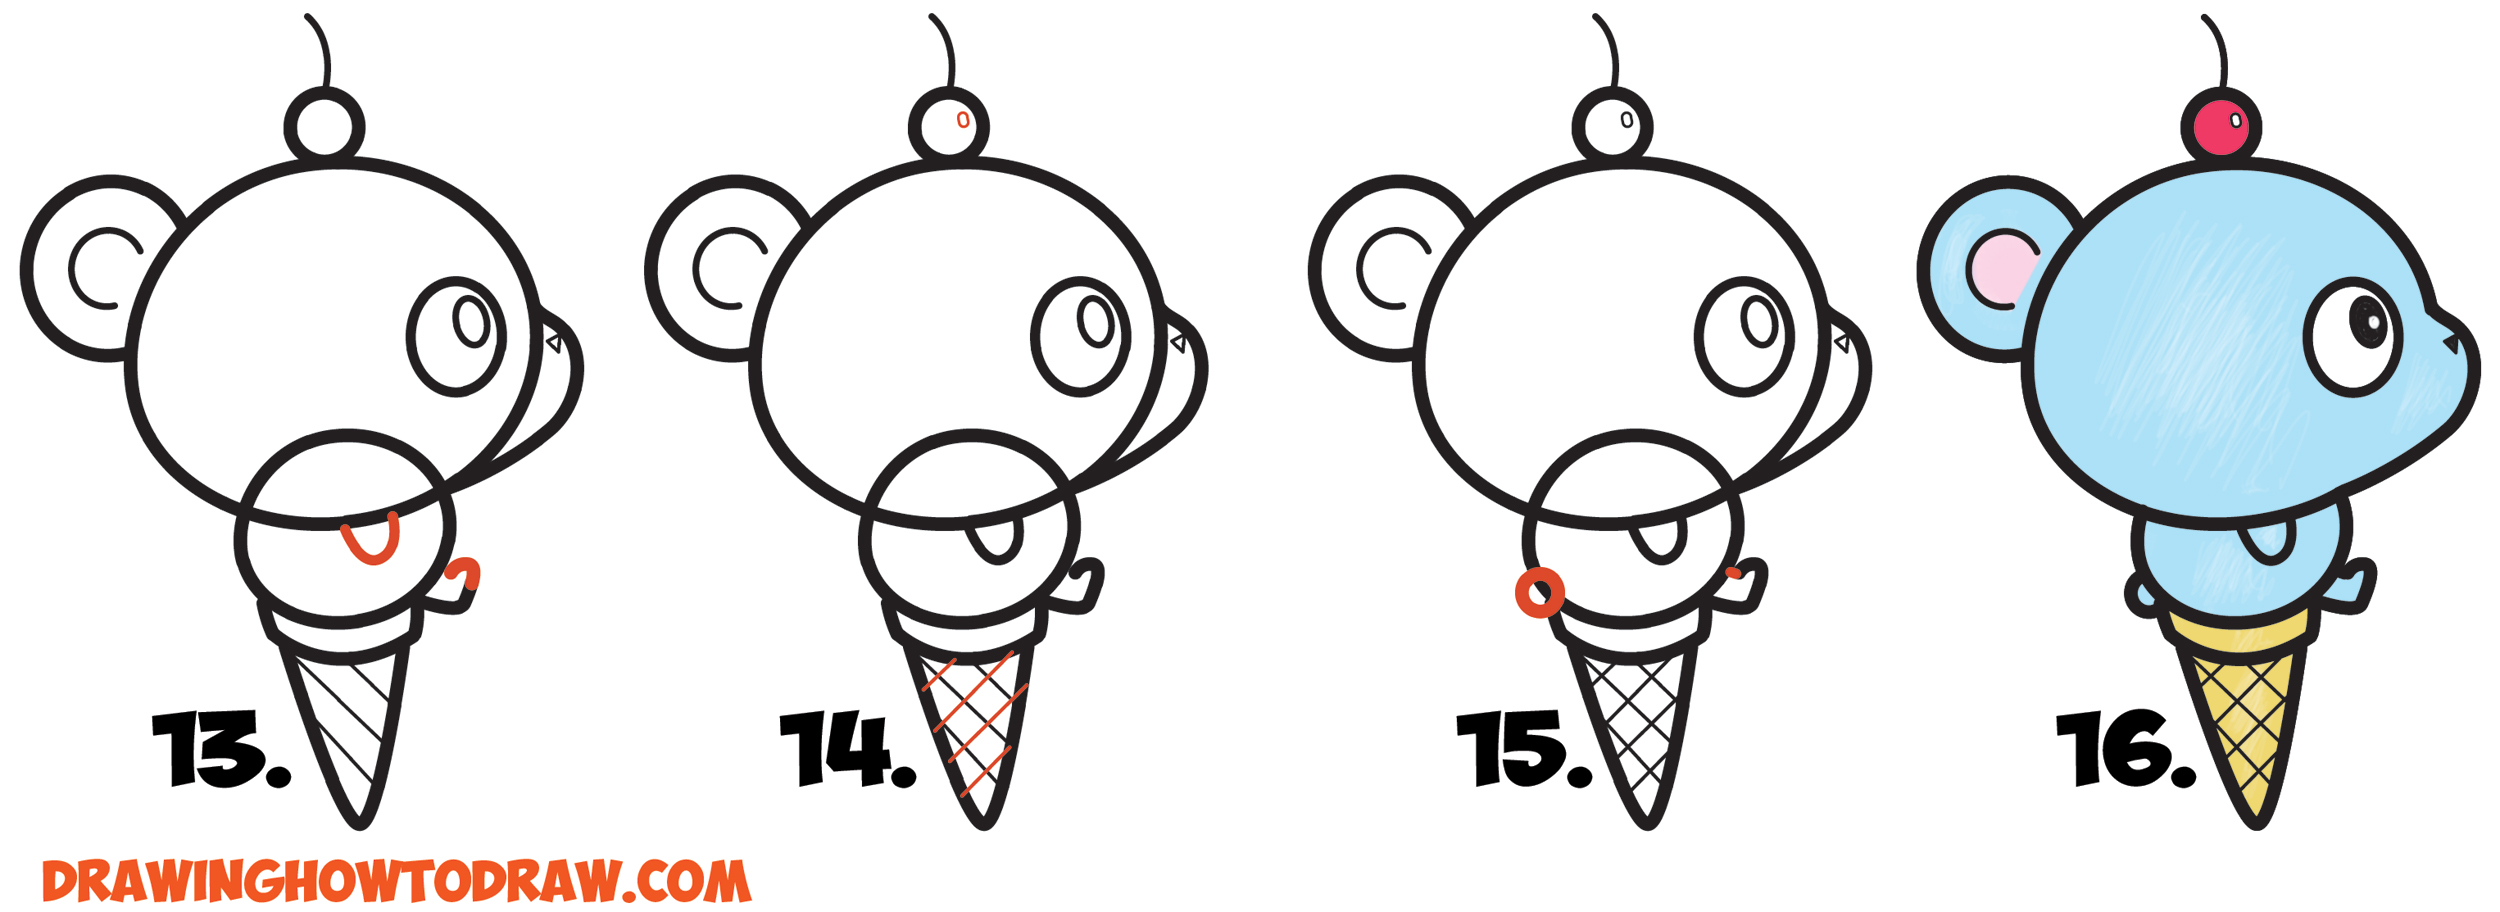 Learn How to Draw Super Cute Cartoon/Kawaii Bear on Ice Cream Cone Simple Steps Drawing Lesson for Children & Beginners